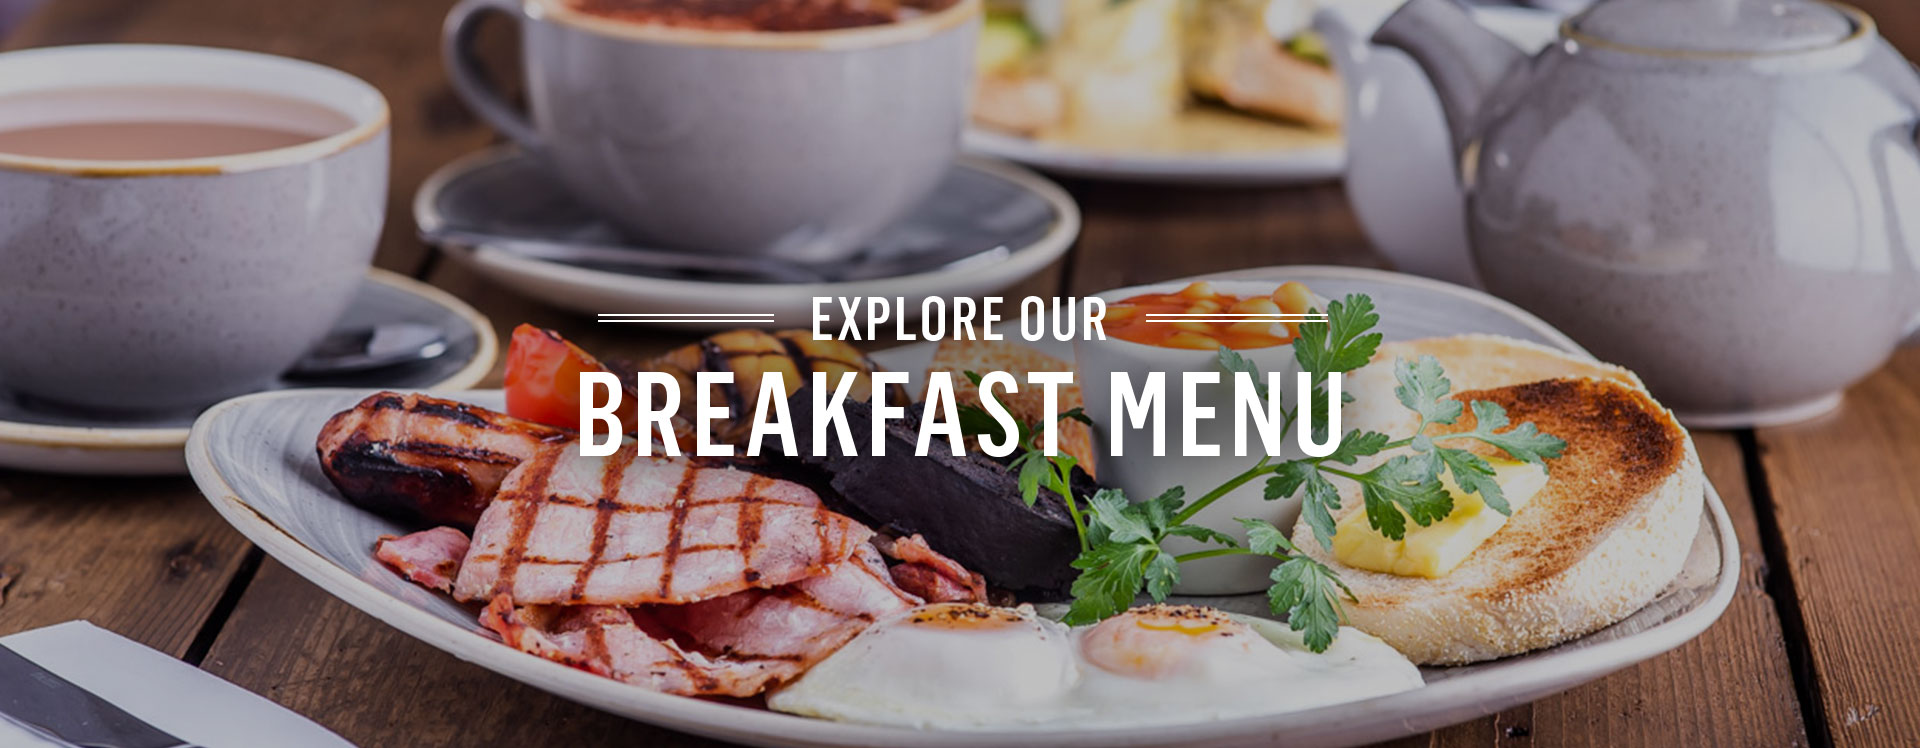 Breakfast at The St George's Tavern - Book a table